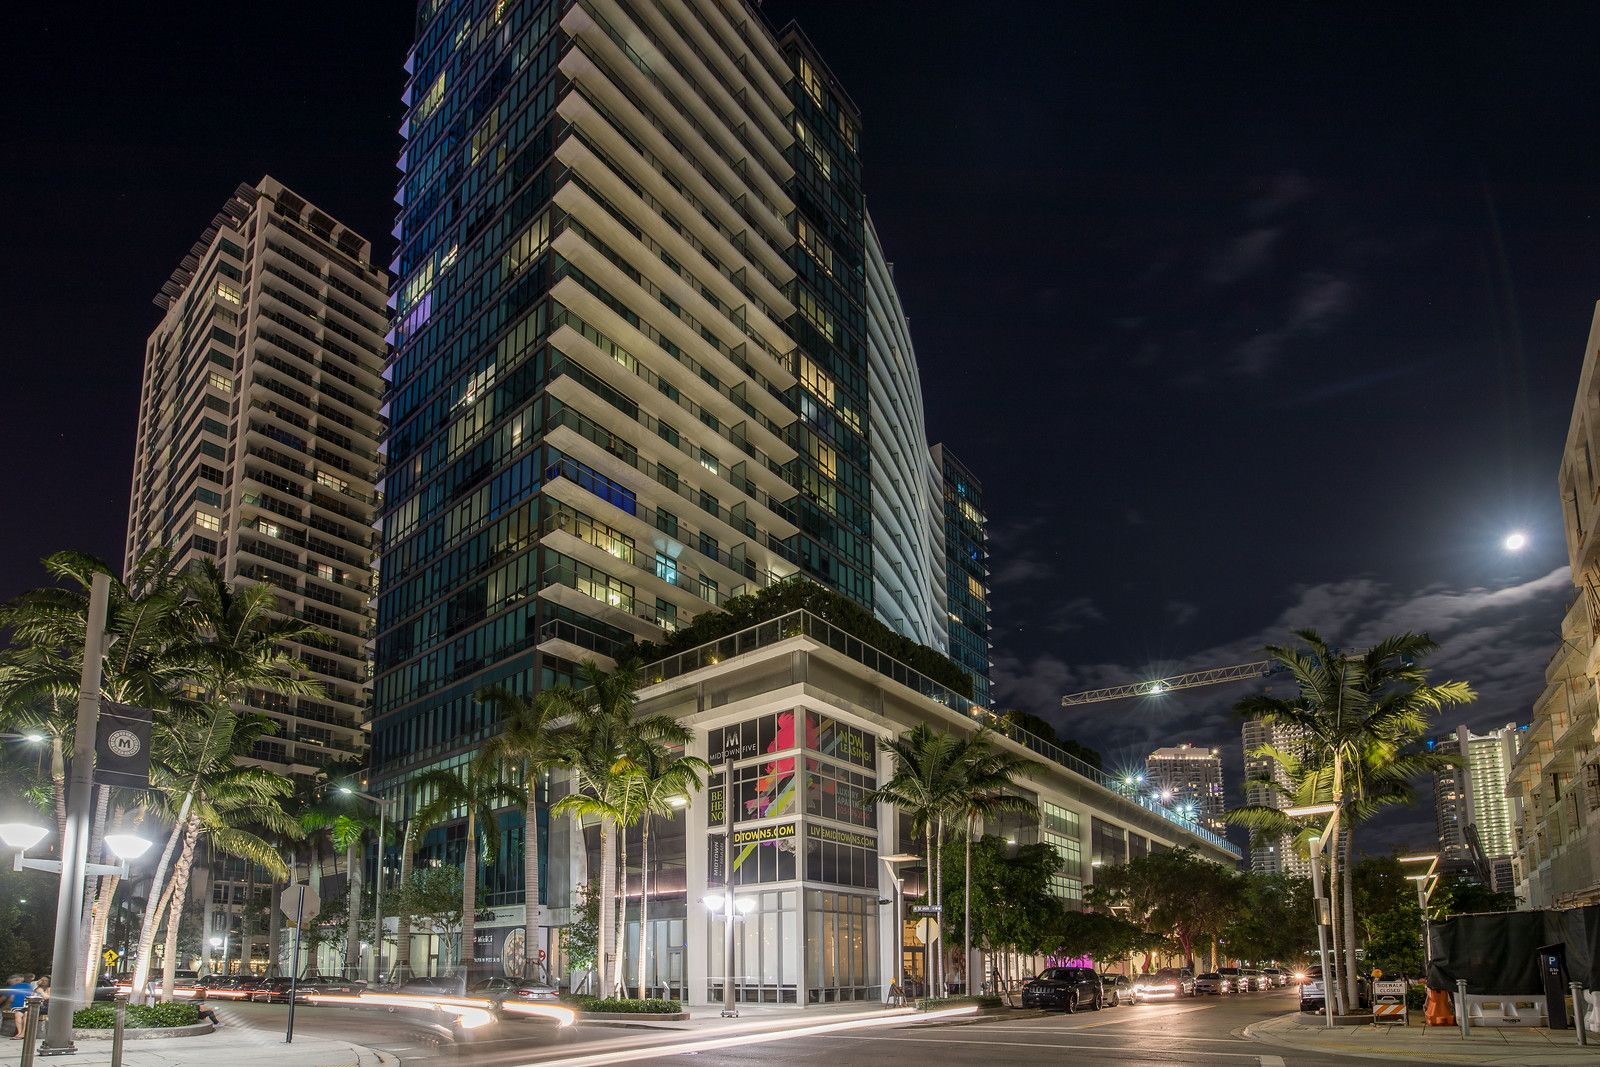 Miami Midtown 5 Tower With Images Natural Ventilation Aluminum Extrusion Midtown